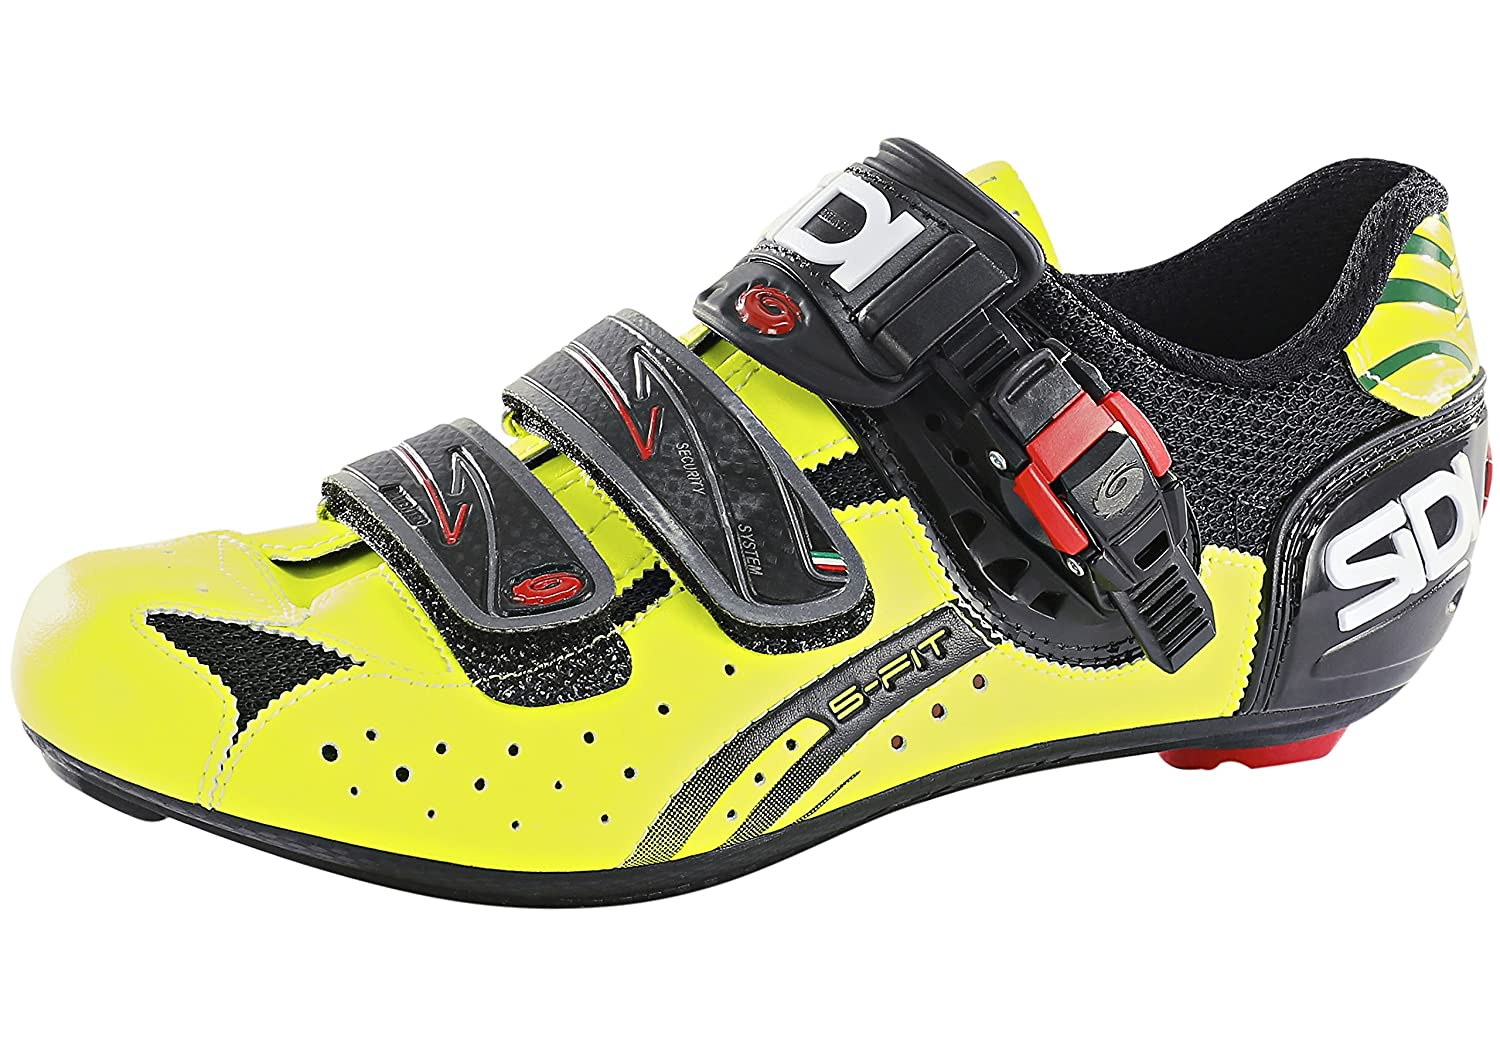 Zapatillas Sidi Genius 5 Fit Carbon Black/Yellow Fluo gr. 42: Amazon.es: Deportes y aire libre